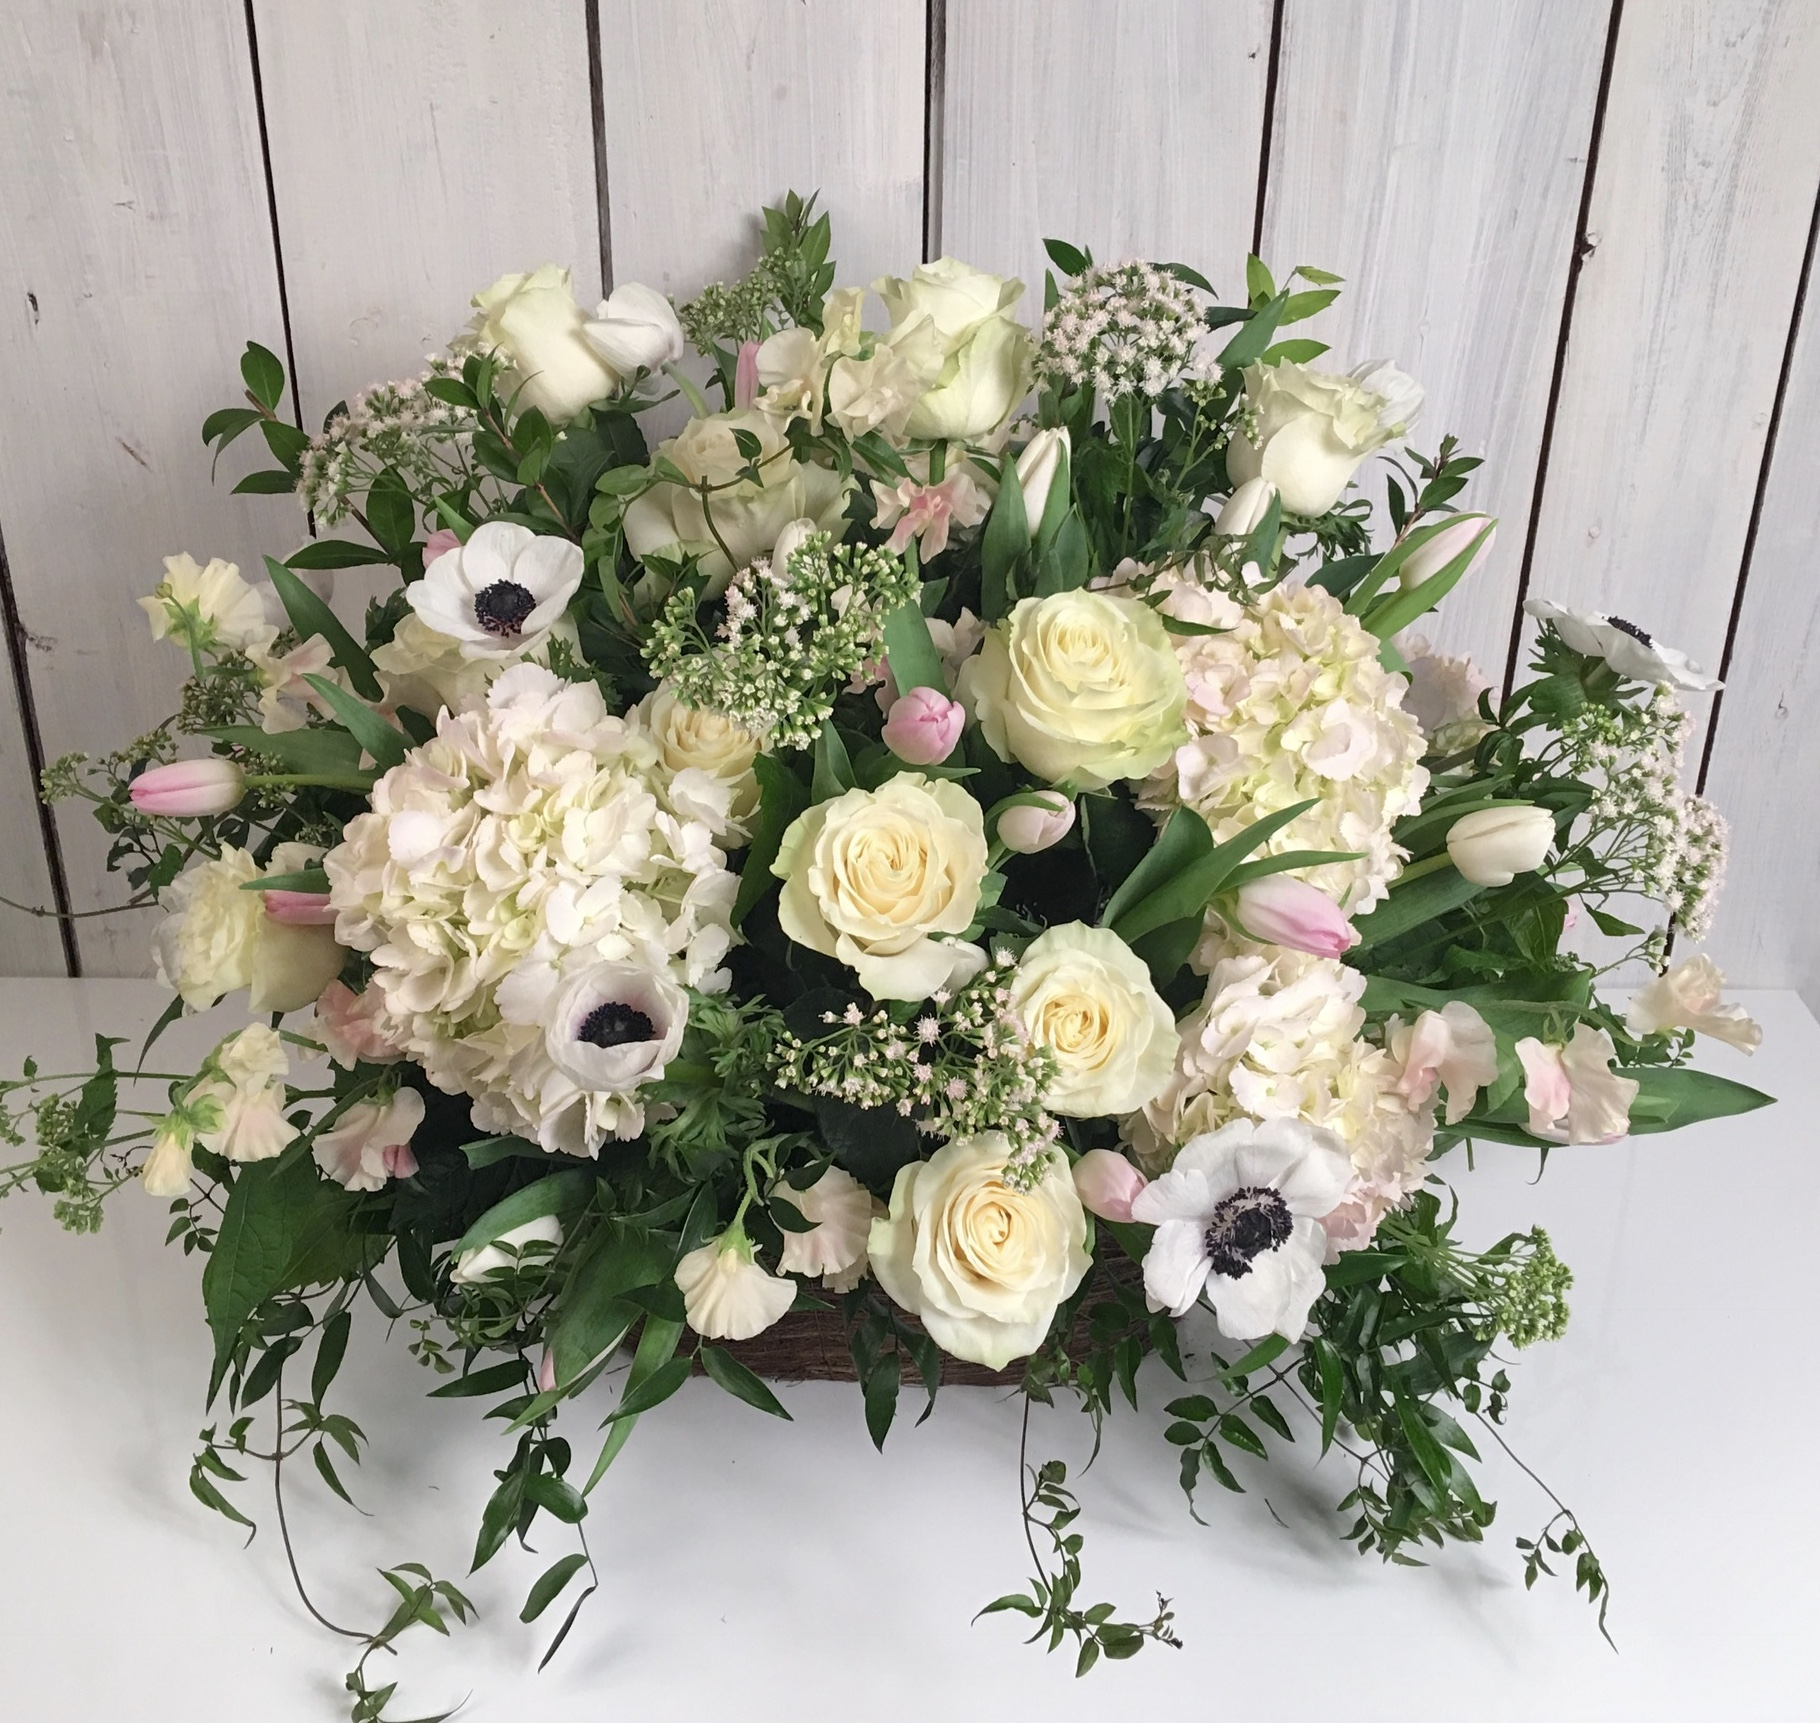 Sympathy Funeral Flowers English Country Basket